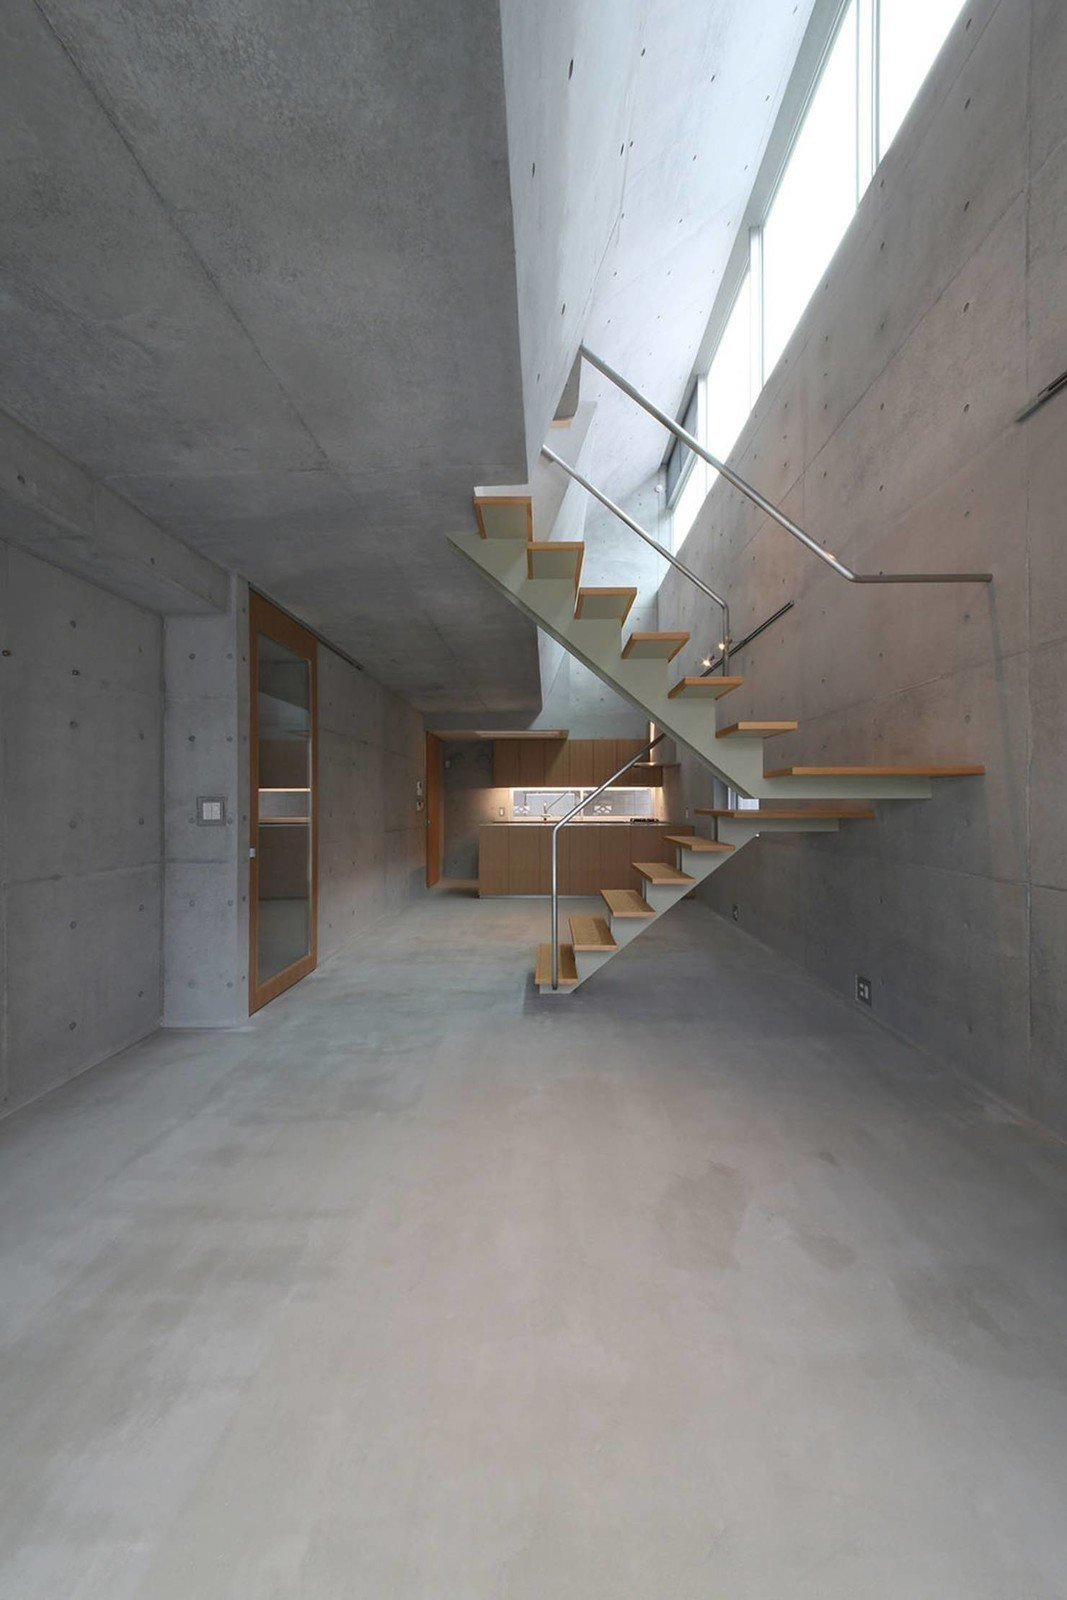 Staircase, Metal Railing, and Wood Tread The interior consists entirely of exposed concrete accented by wood. The ground floor features double-height ceilings that maximize natural light from the lightwells above.  Photo 6 of 11 in Material Spotlight: 10 Killer Concrete Homes